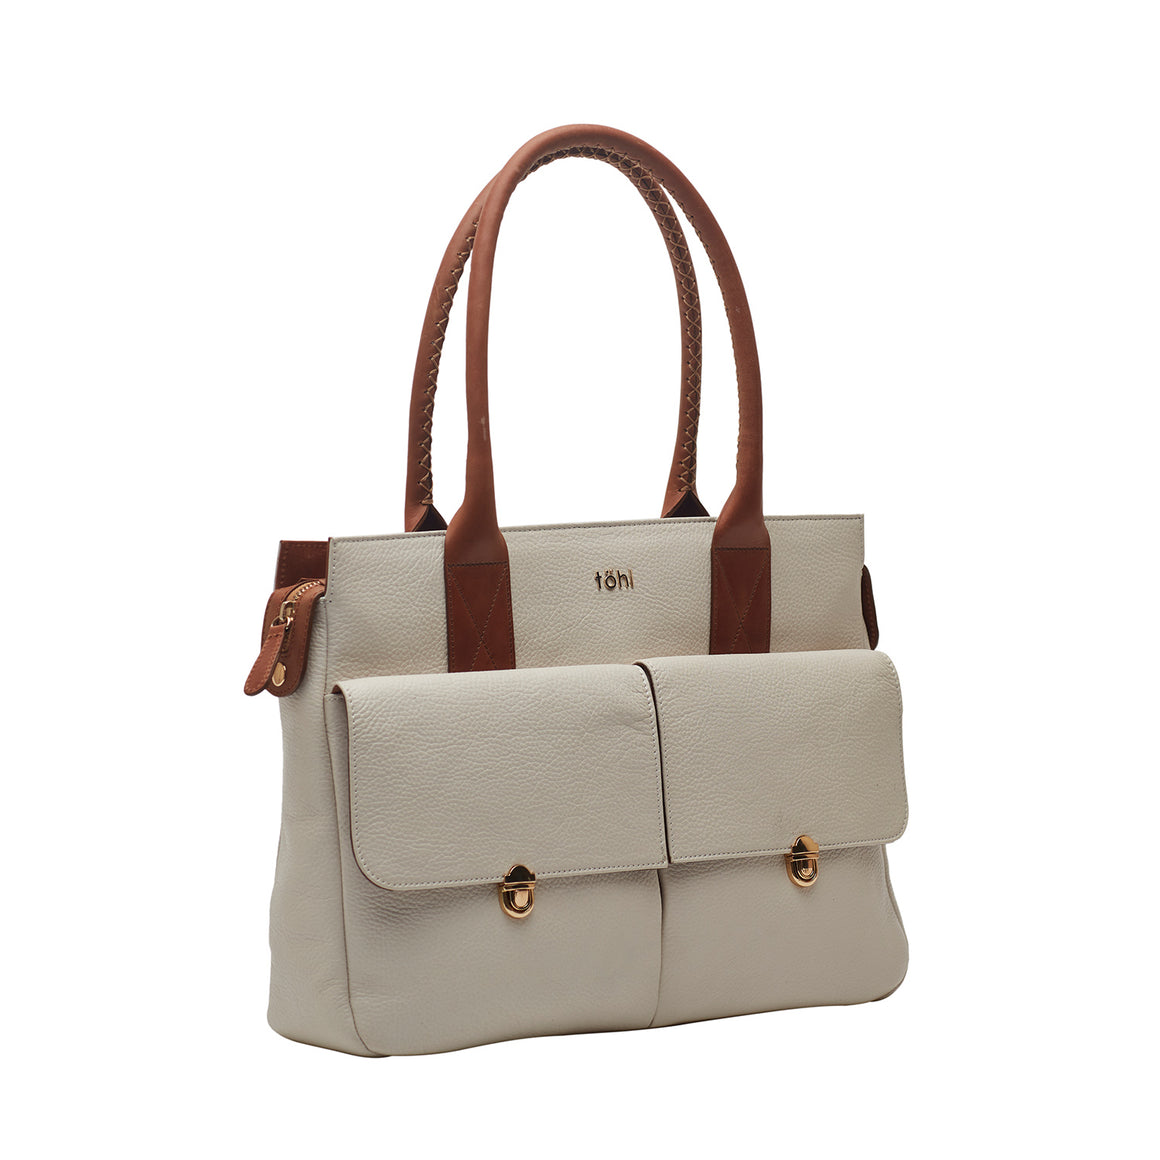 HH 0015 - TOHL GALWAY WOMEN'S VALISES & SATCHEL BAG - WHITE